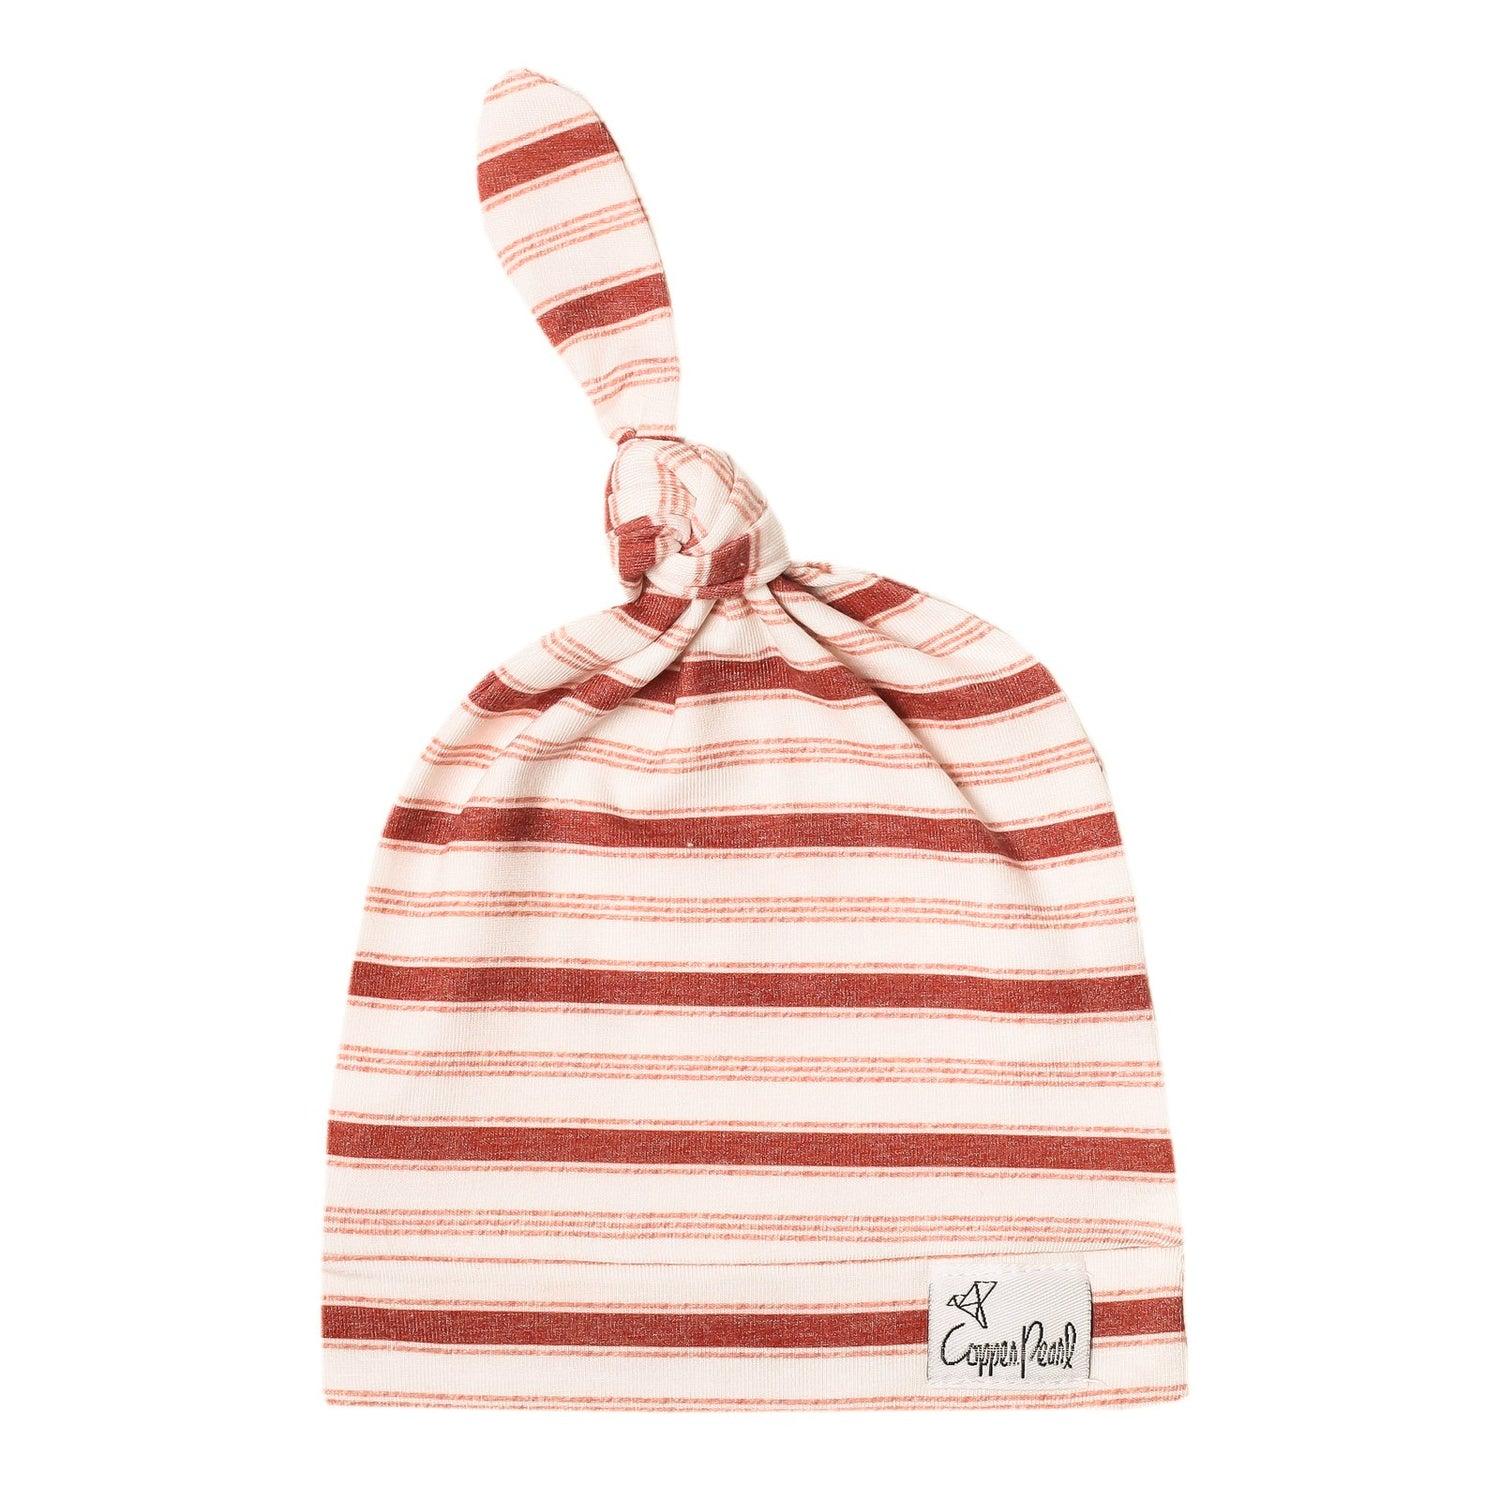 Cinnamon Newborn Top Knot Hat